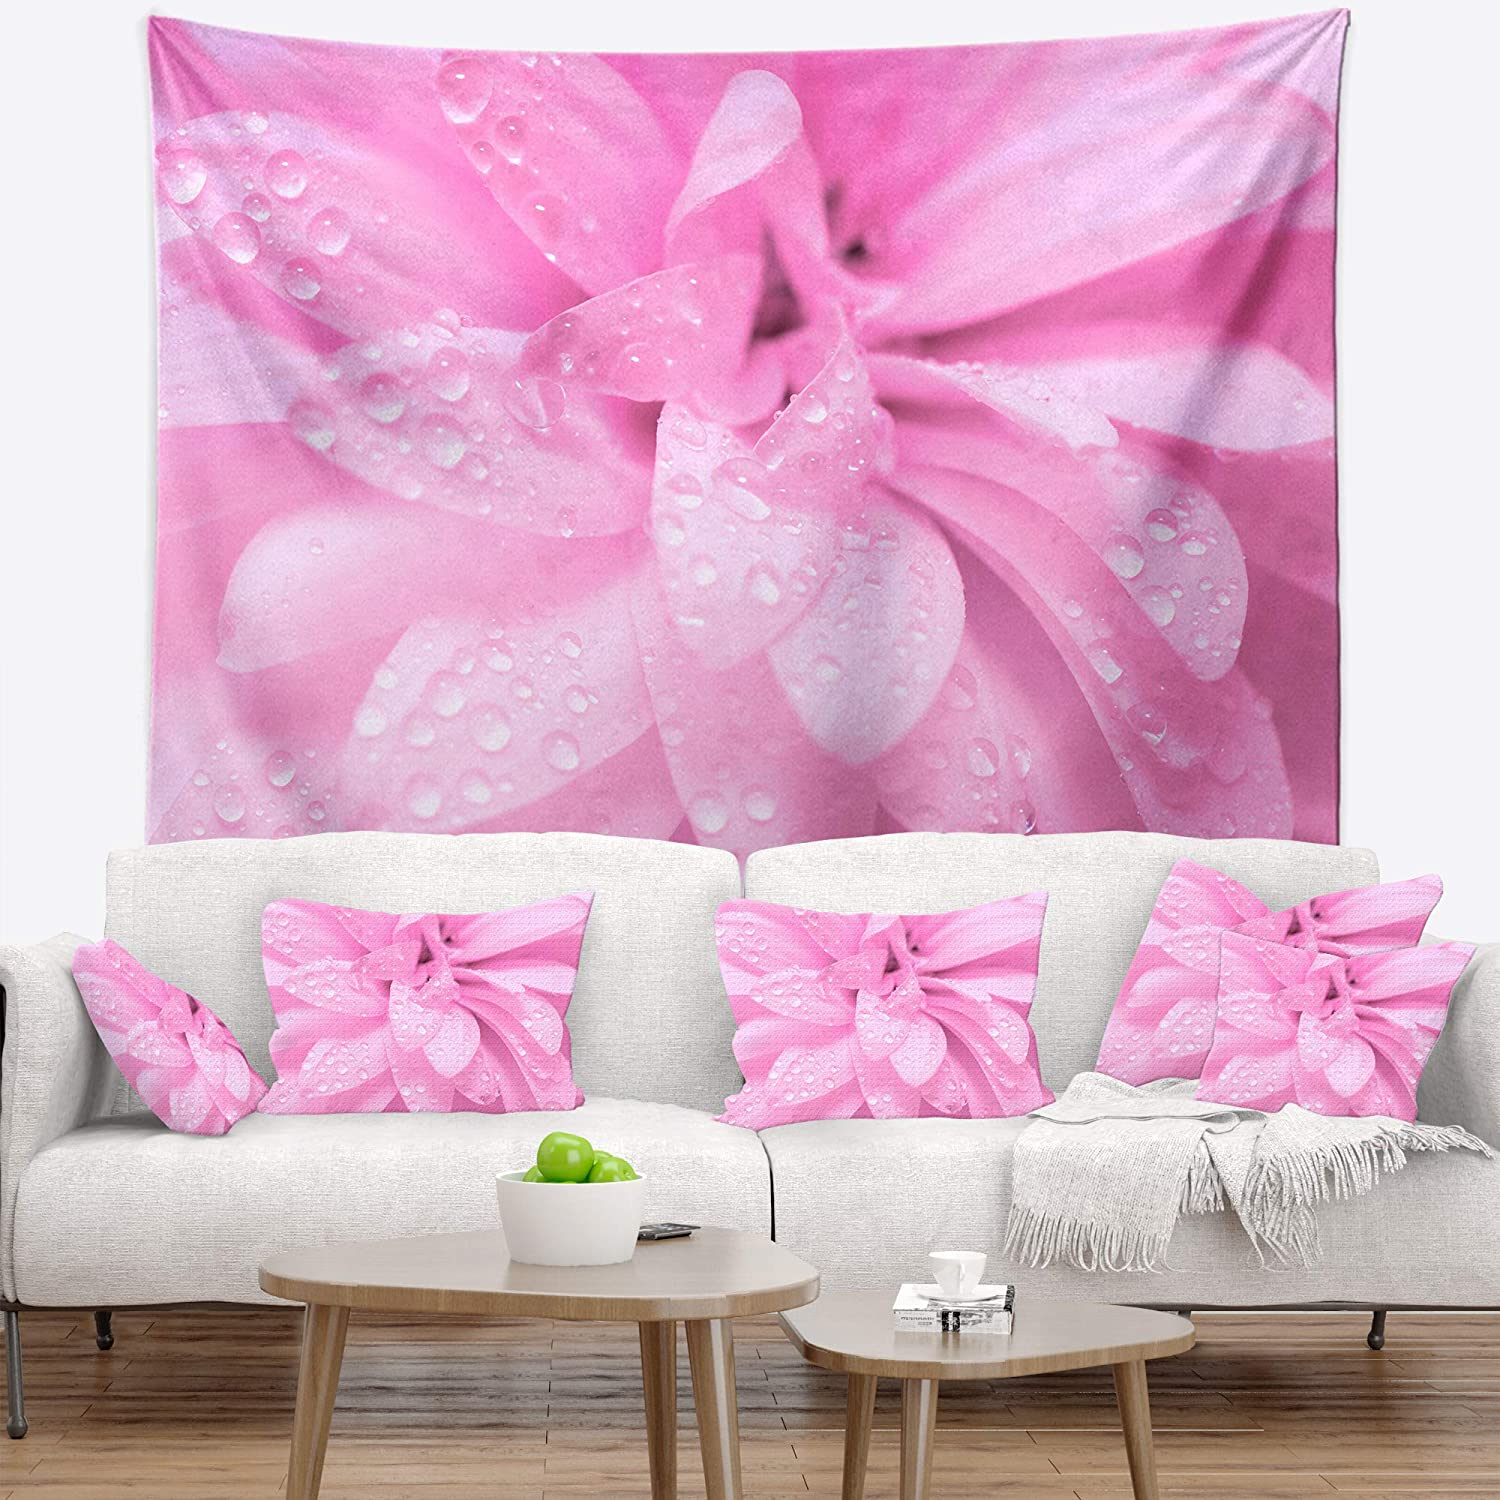 ArtWall Cora Nieles Pastel Appeelz Removable Graphic Wall Art 16 by 24